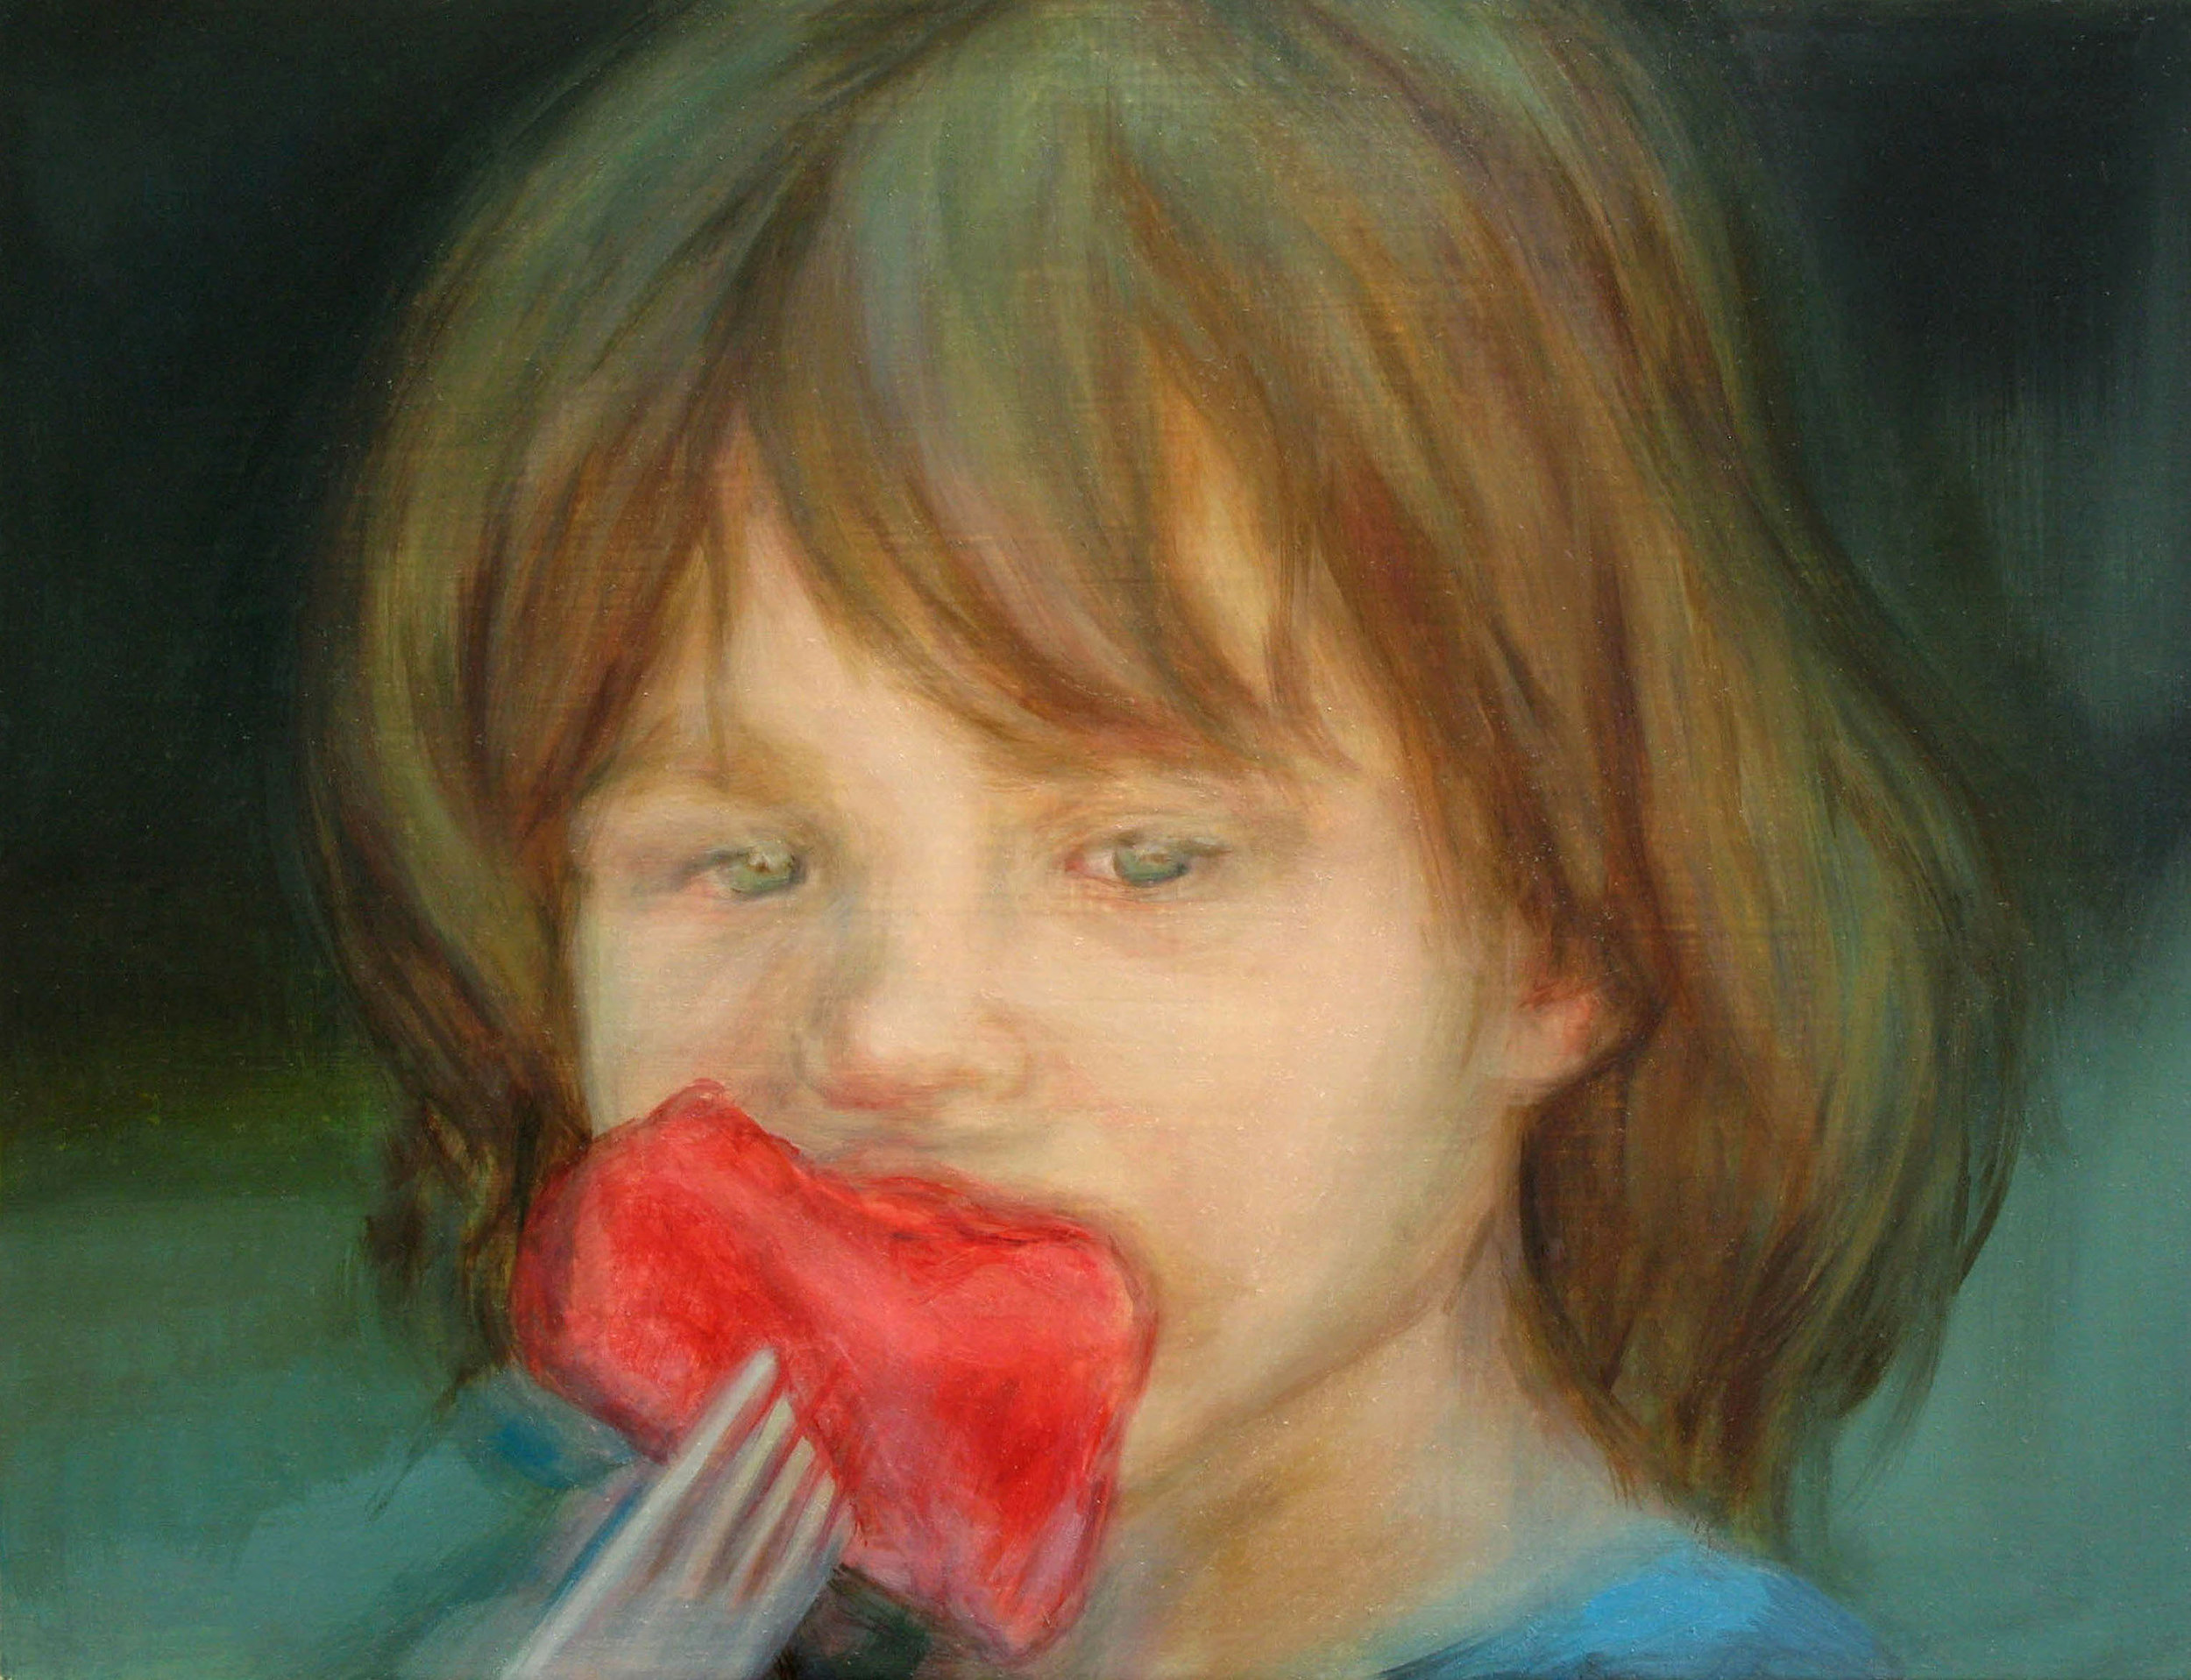 Watermelon,  Oil on board, 30 x 40cm, 2007